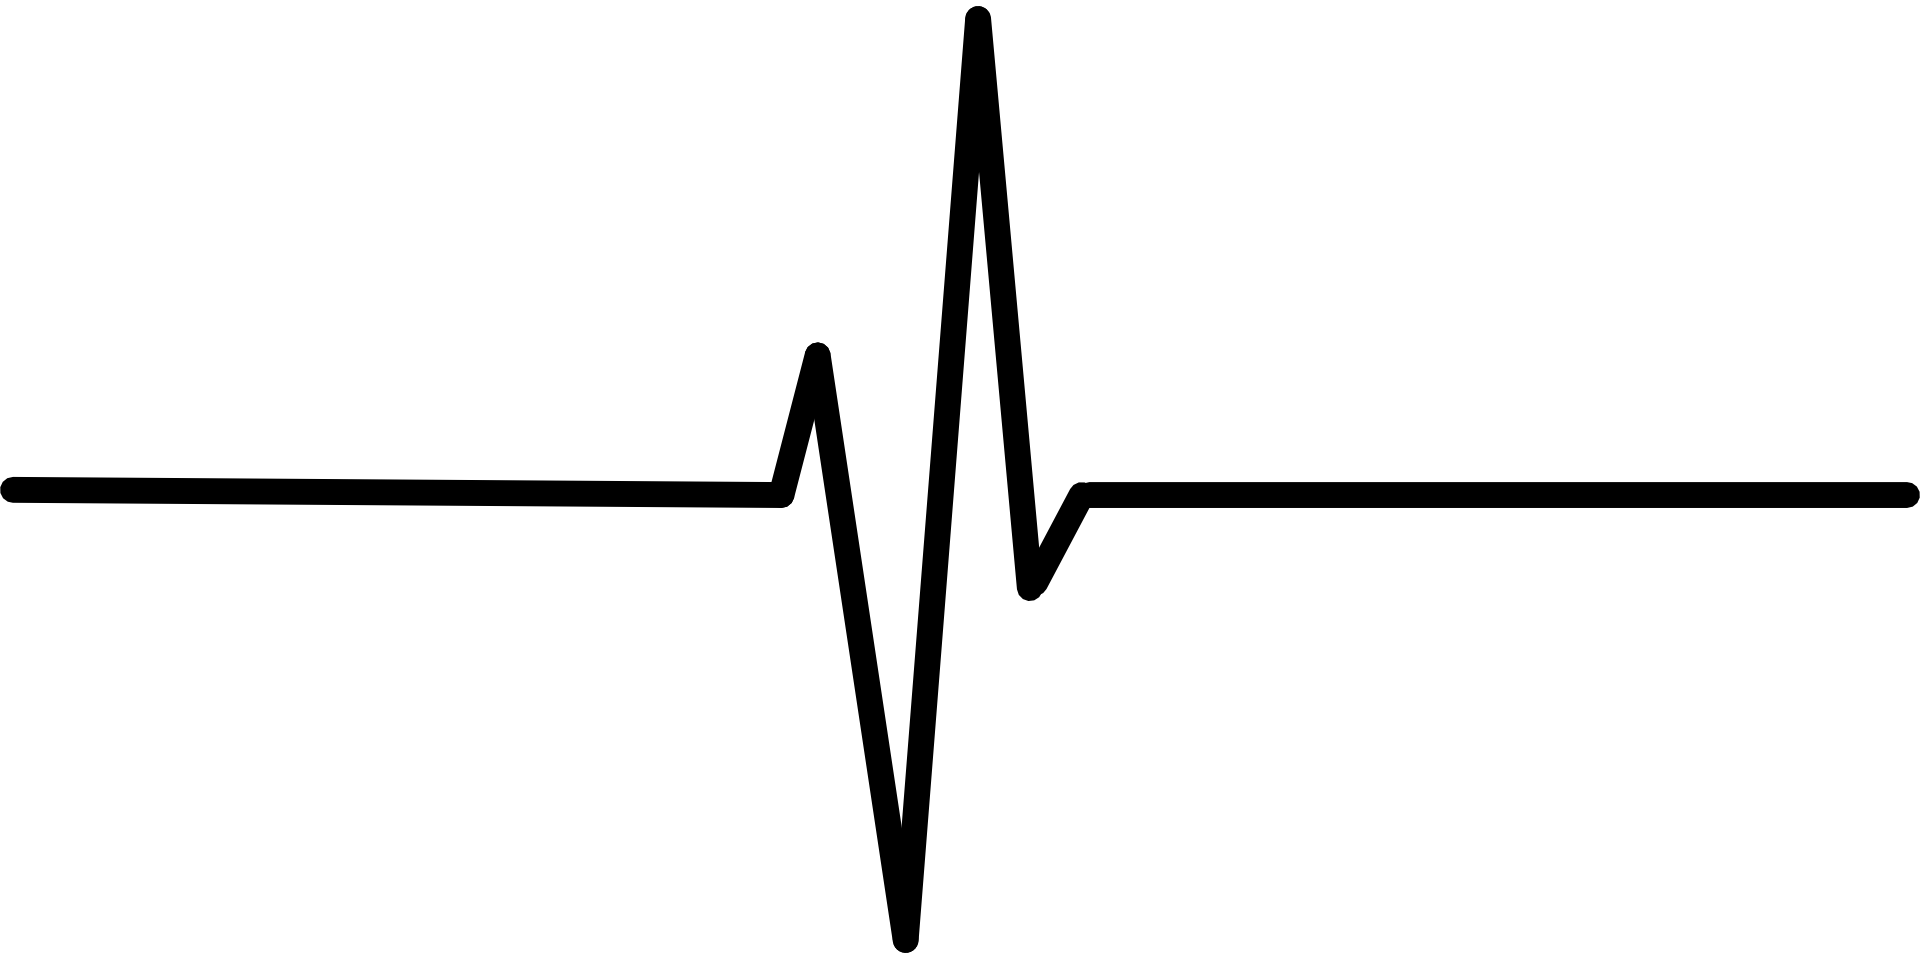 Heartbeat Png Transparent Black: Heartbeat Clipart Hearbeat, Heartbeat Hearbeat Transparent